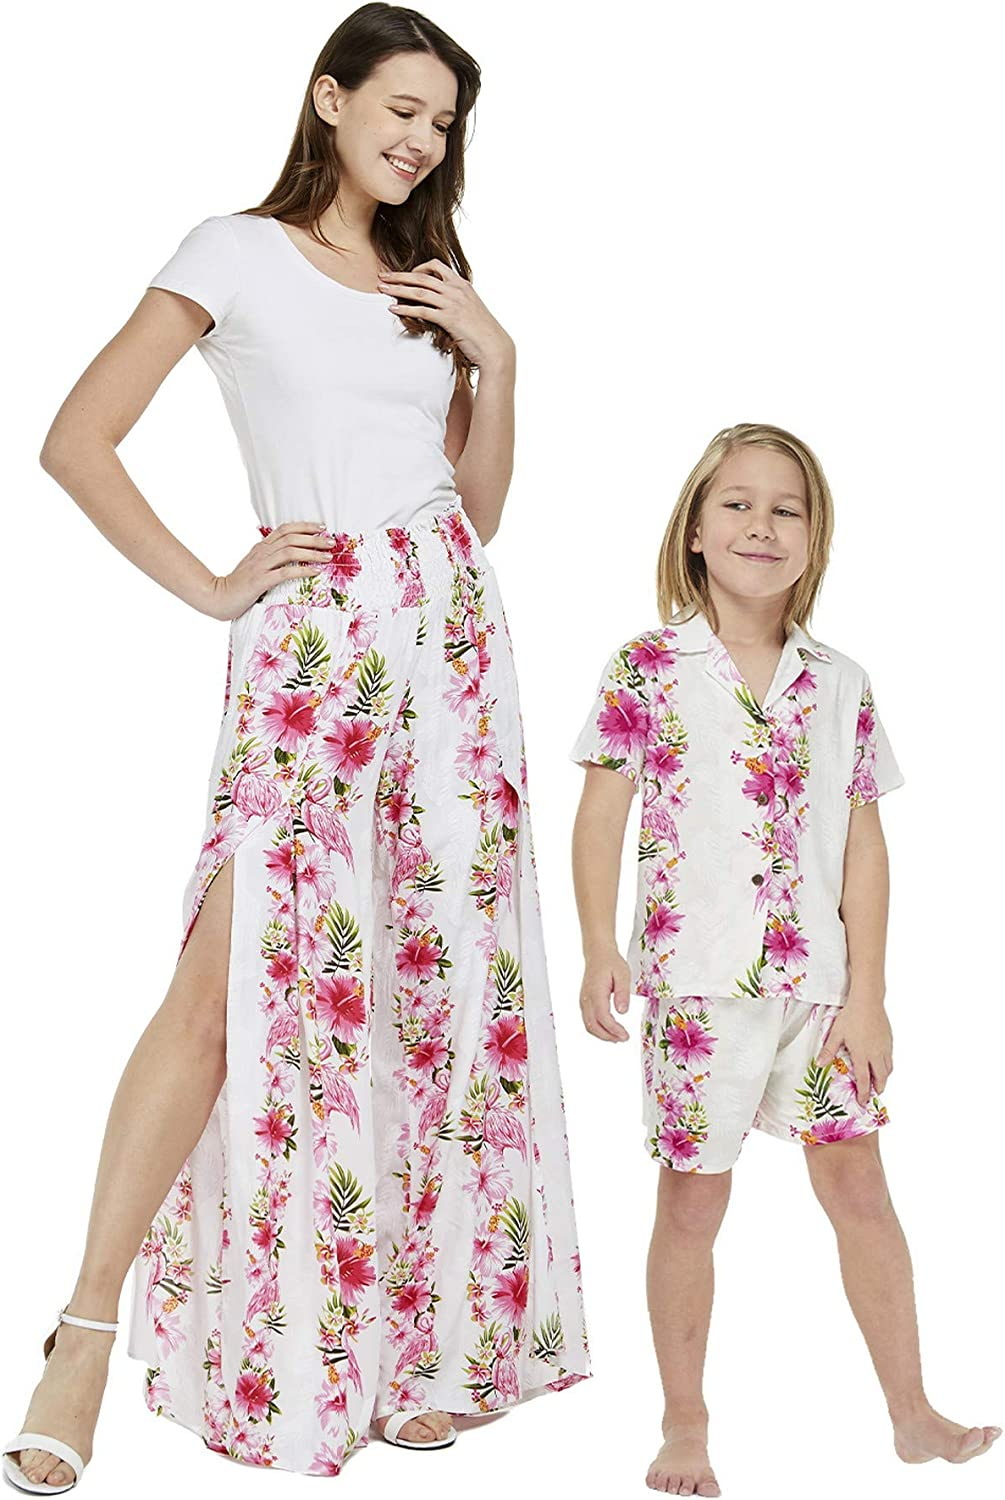 Matching Mother Max 79% OFF Son Hawaiian Luau We OFFer at cheap prices Outfit Whi Shirt Pink Pants in